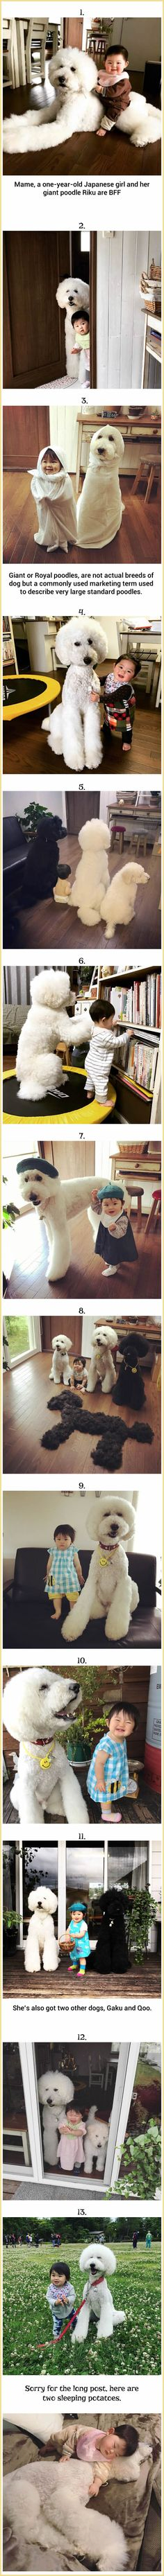 Cute Japanese Toddler And Fluffy Giant/Royal Poodles Make The Perfect Team!